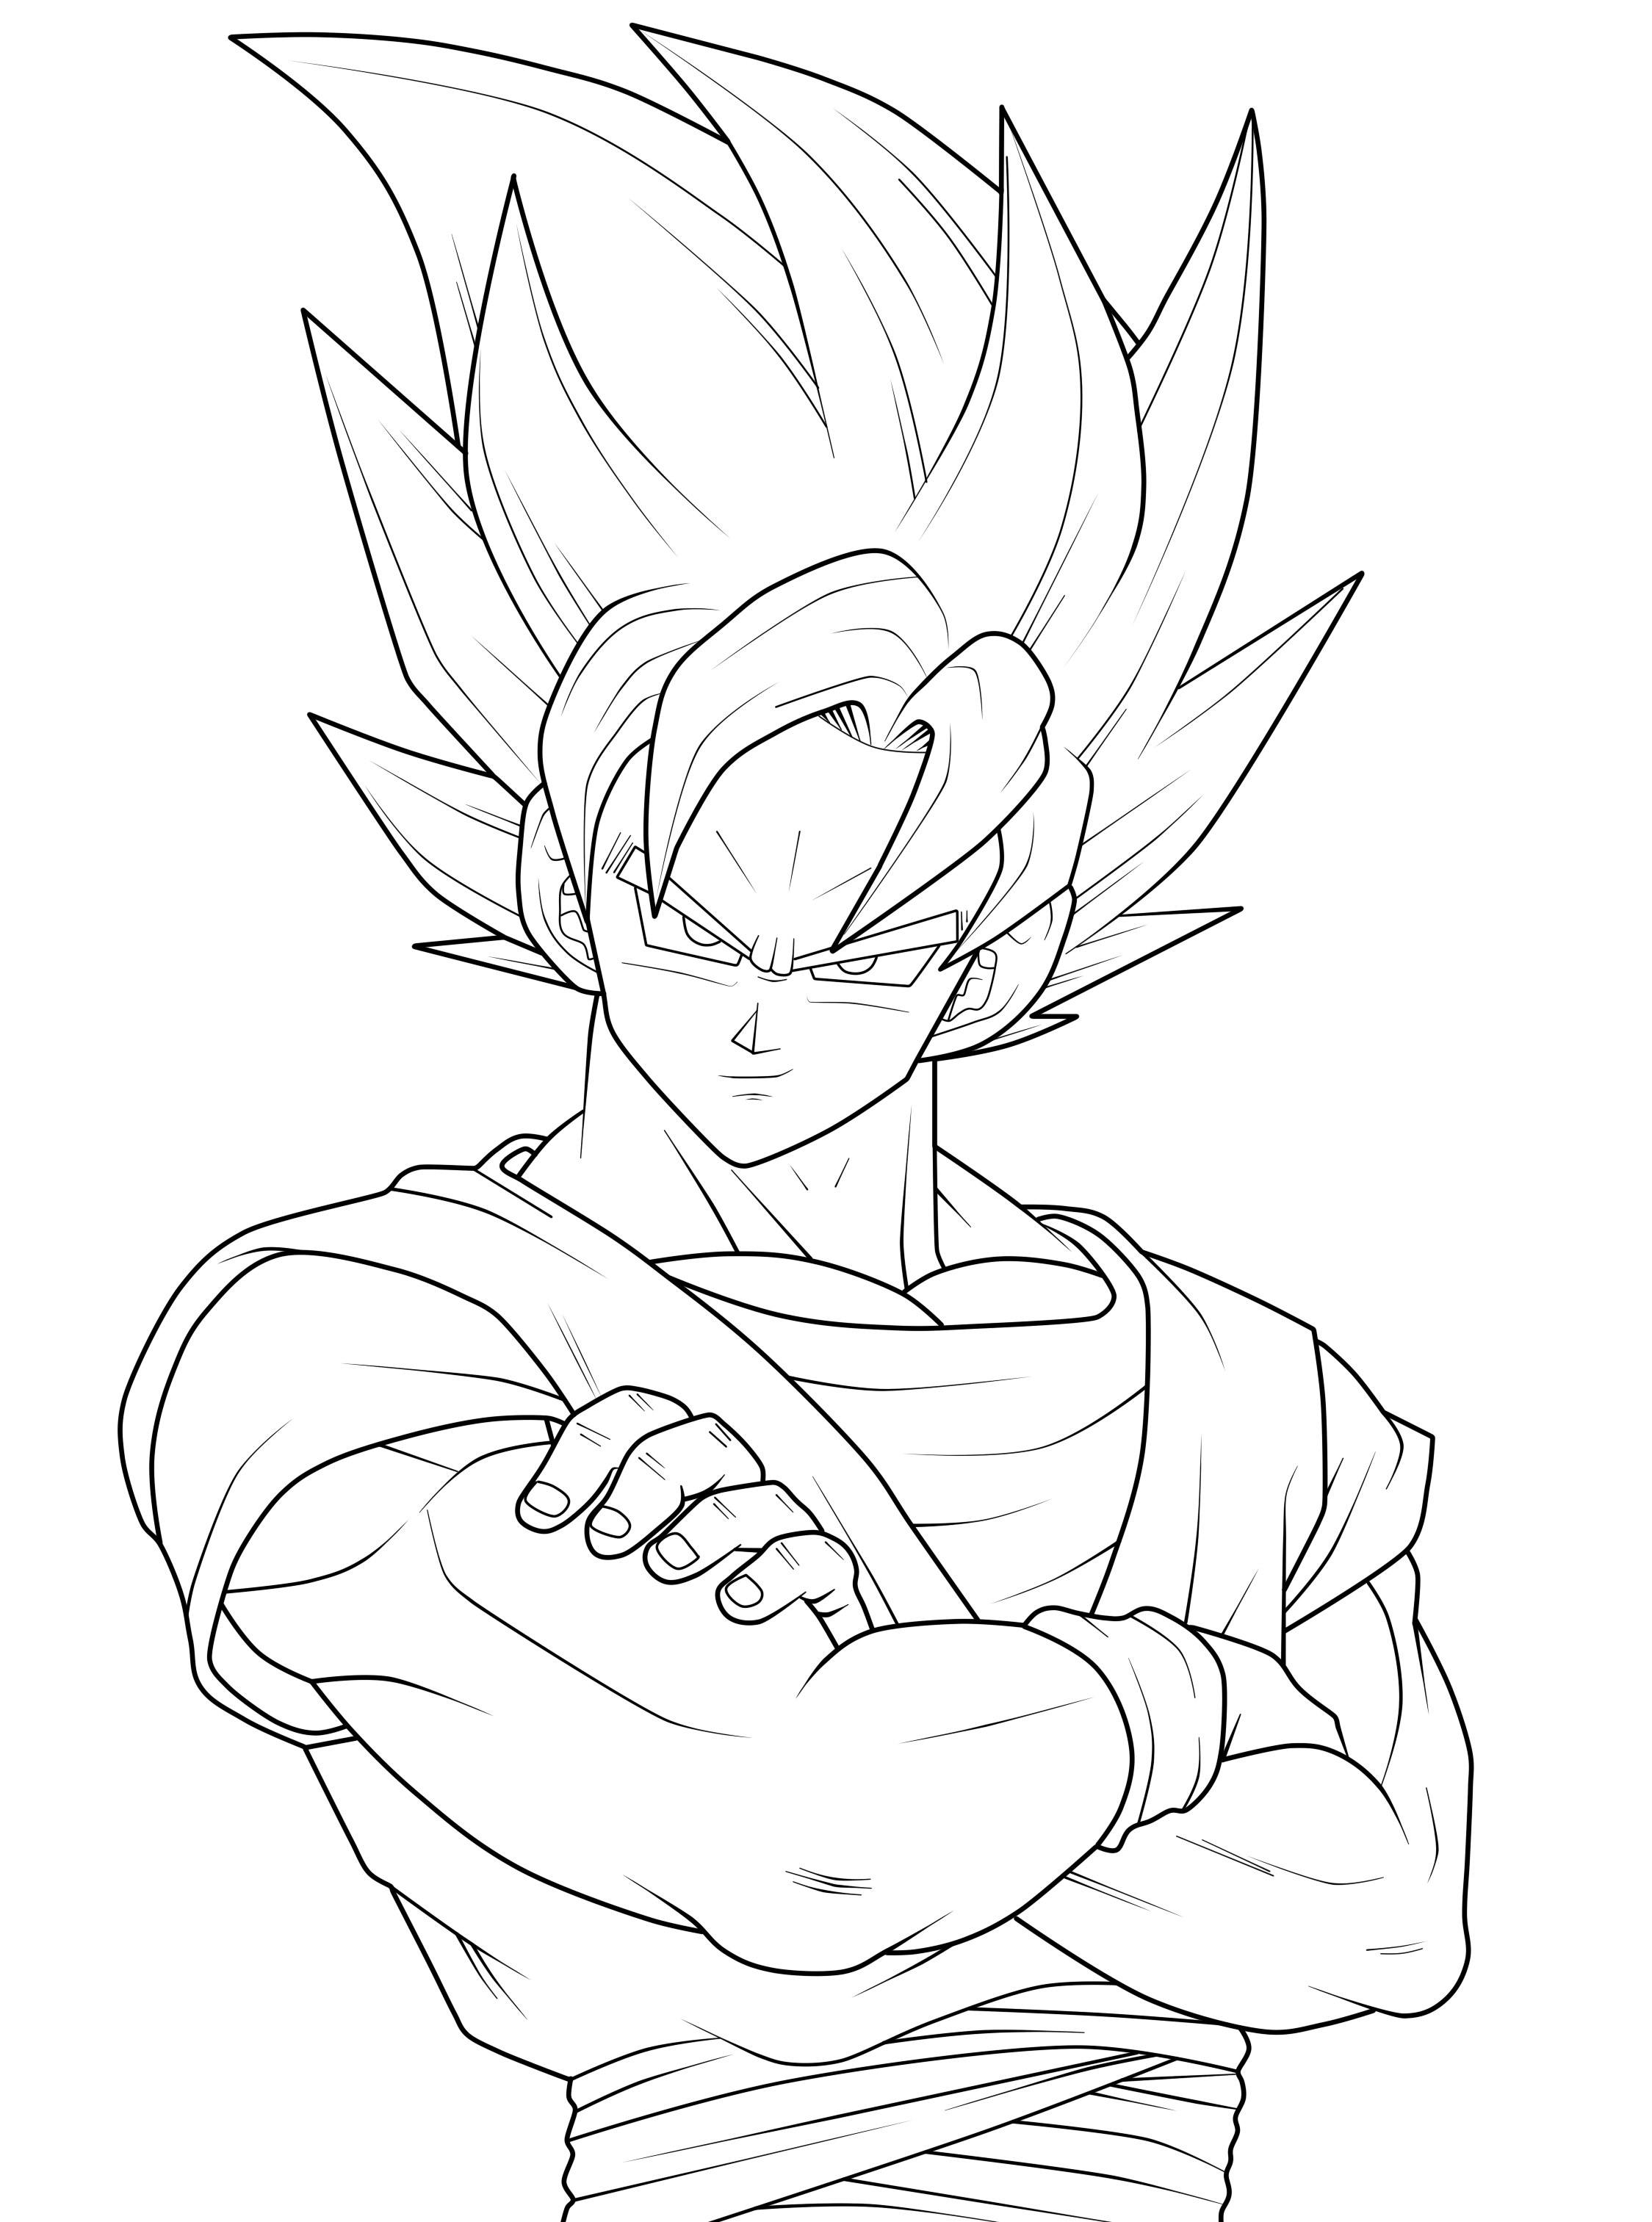 goku-coloring-pages-10.png (2249×3025) | Graphite Pencil Art ...